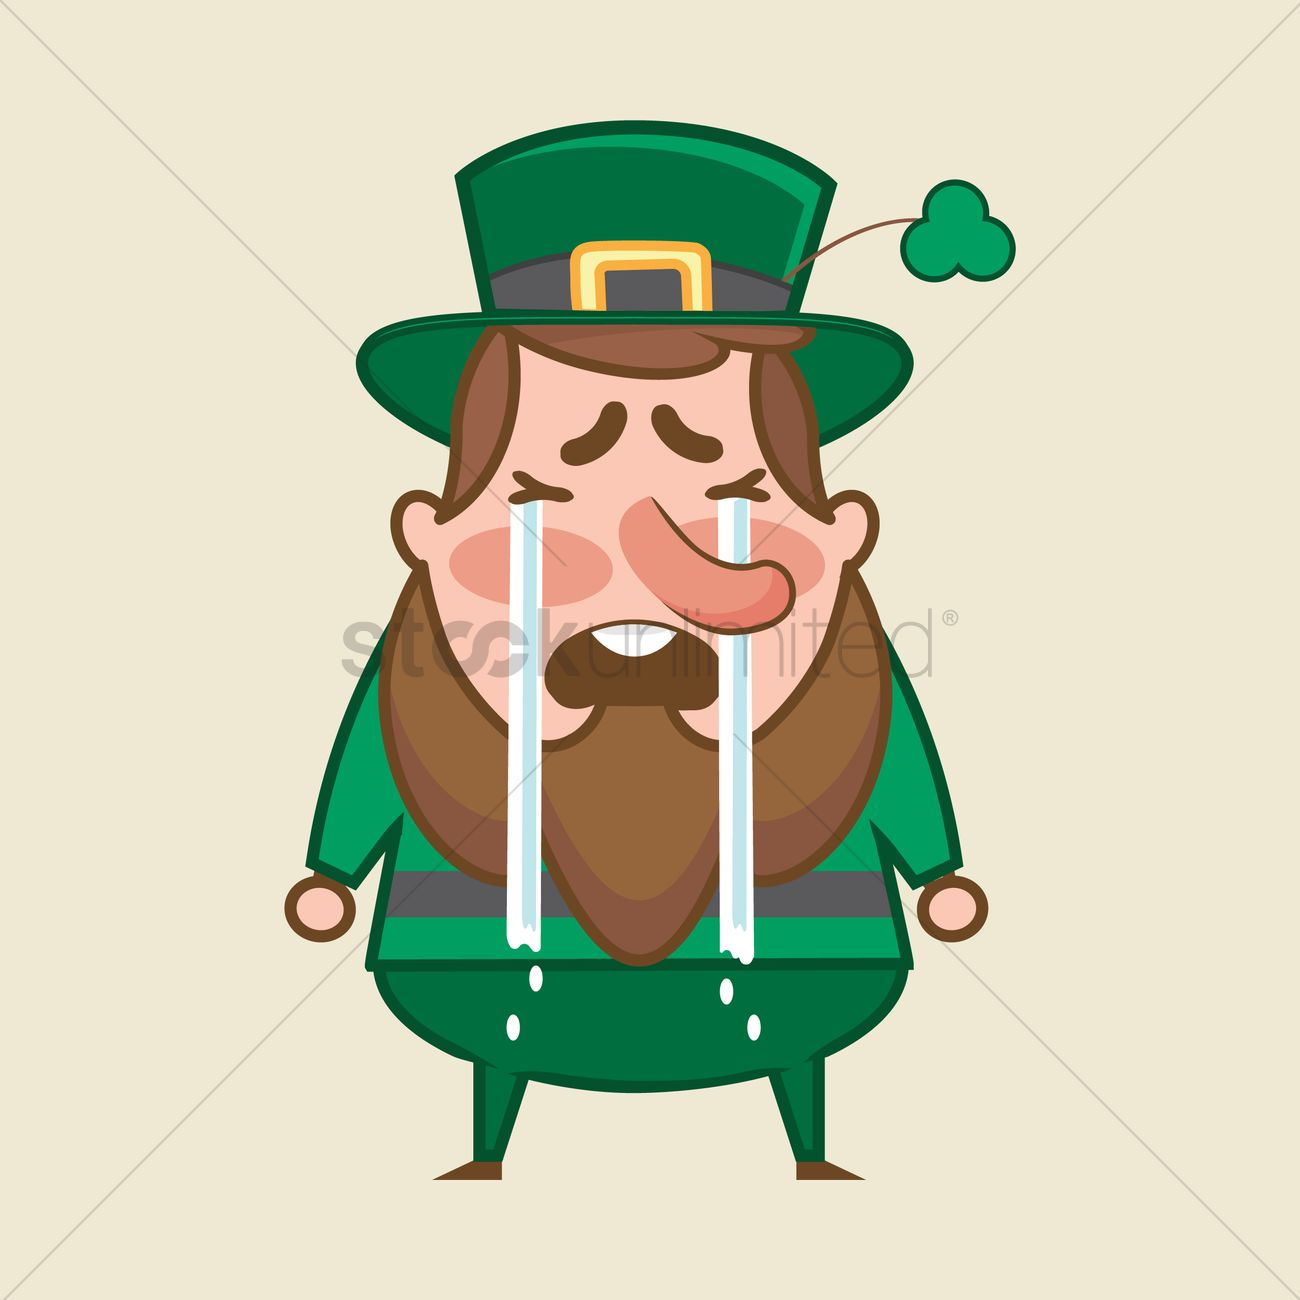 Leprechaun crying vector image 1957113 stockunlimited leprechaun crying vector graphic altavistaventures